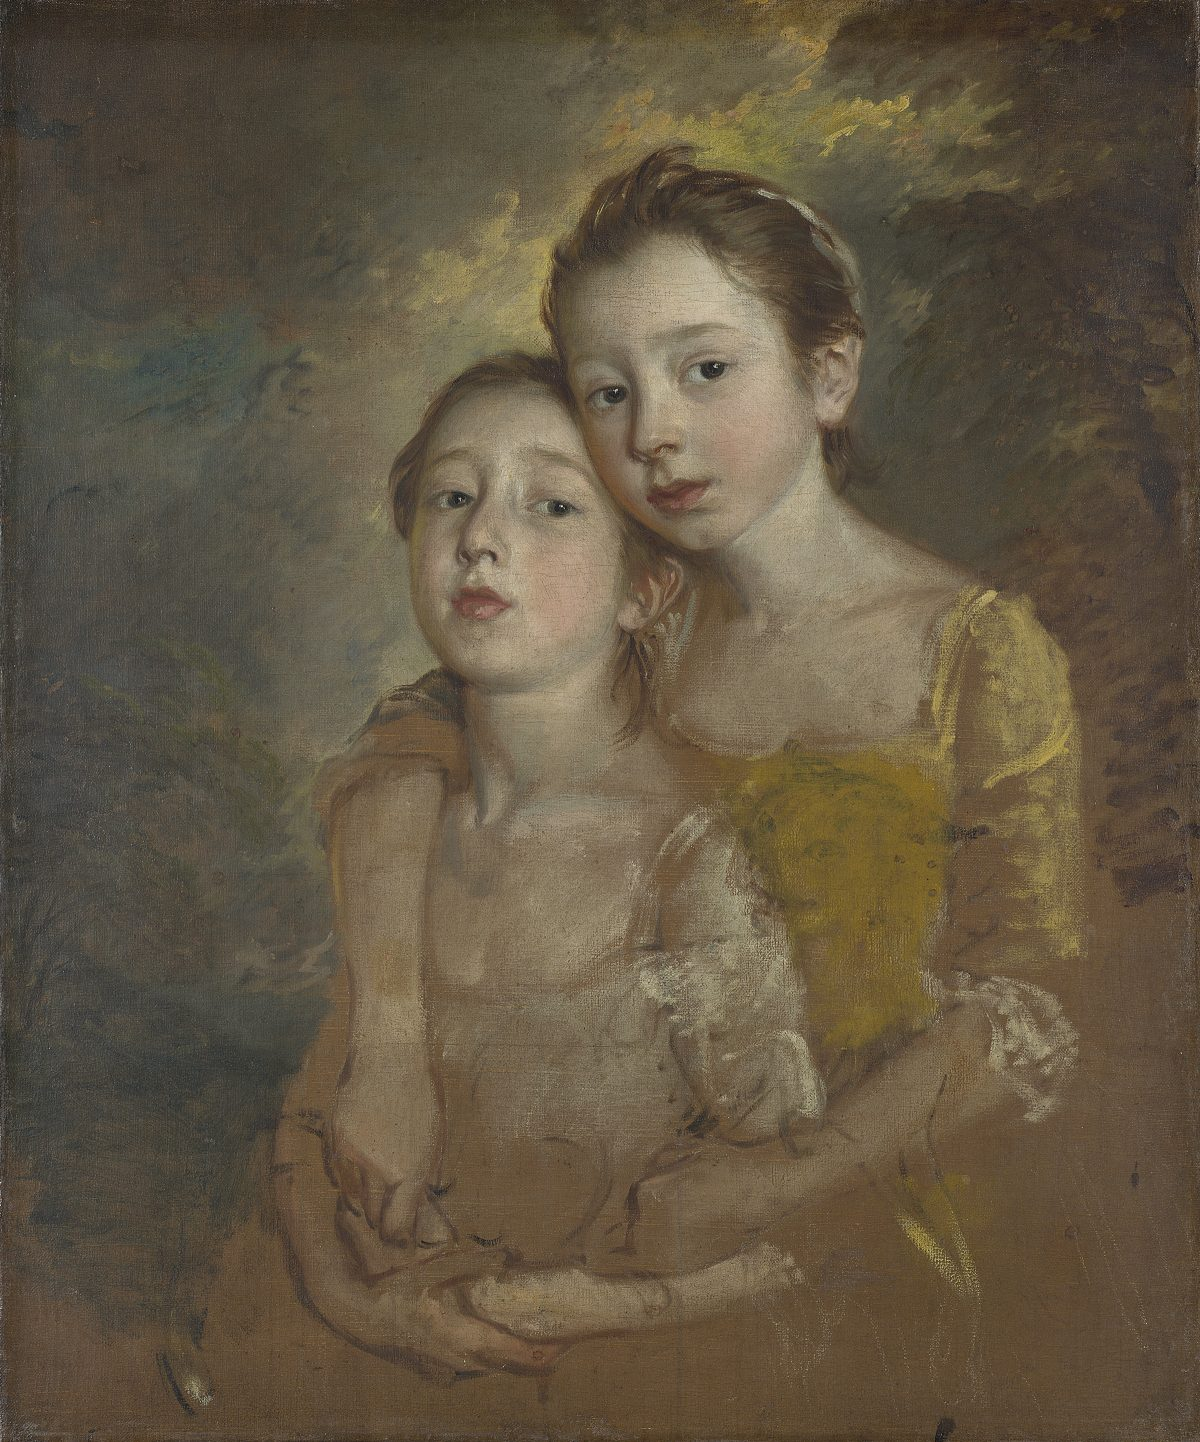 Two young girls 18th century